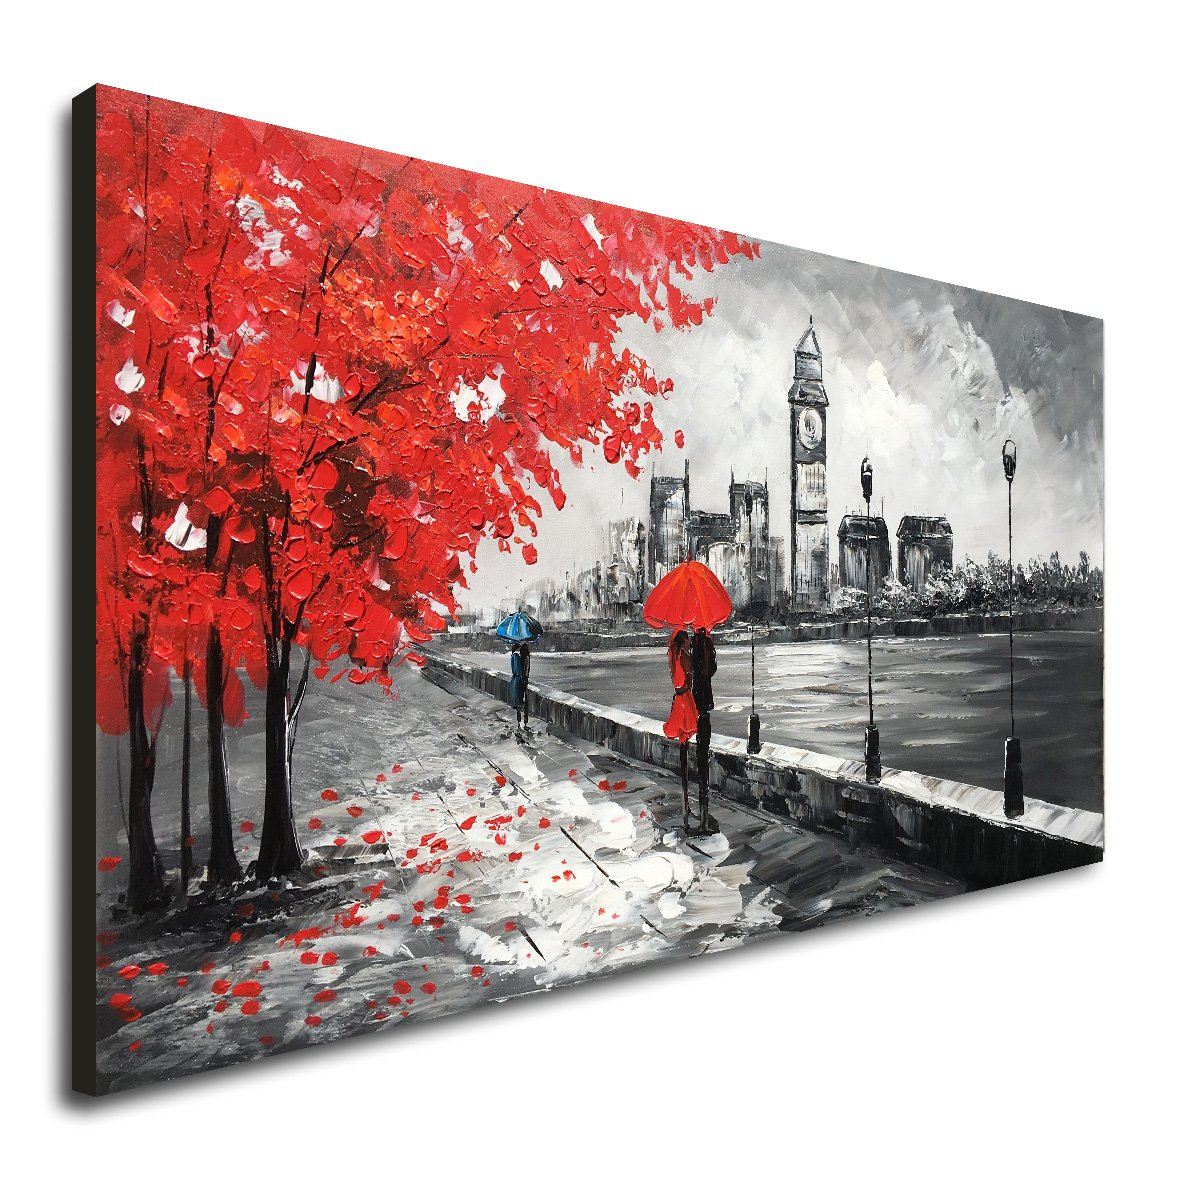 Hand painted red umbrella couple oil painting canvas art wall decor landscape romantic london city street textured artwork framed ready to hang 40x20 inch